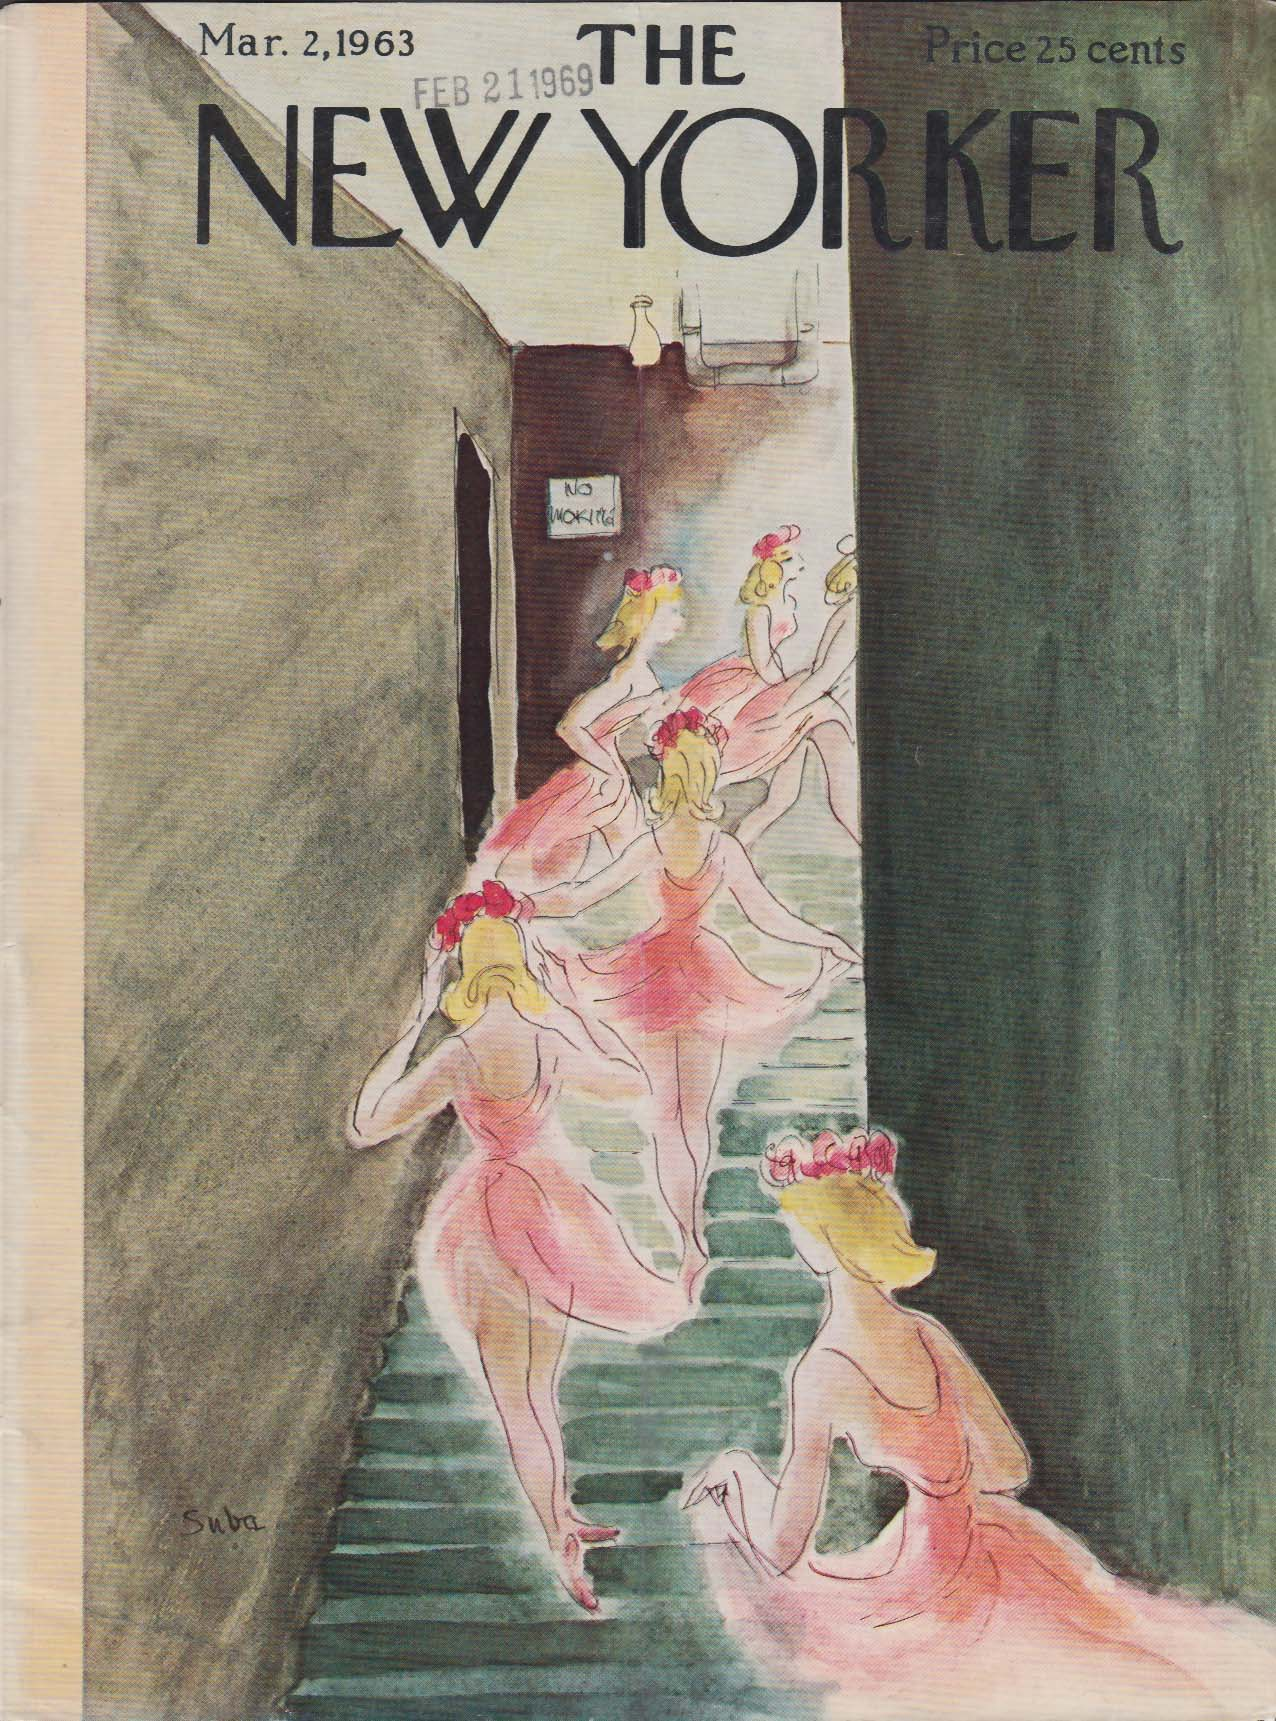 New Yorker cover Suba spring dancers off-stage 3/2 1963